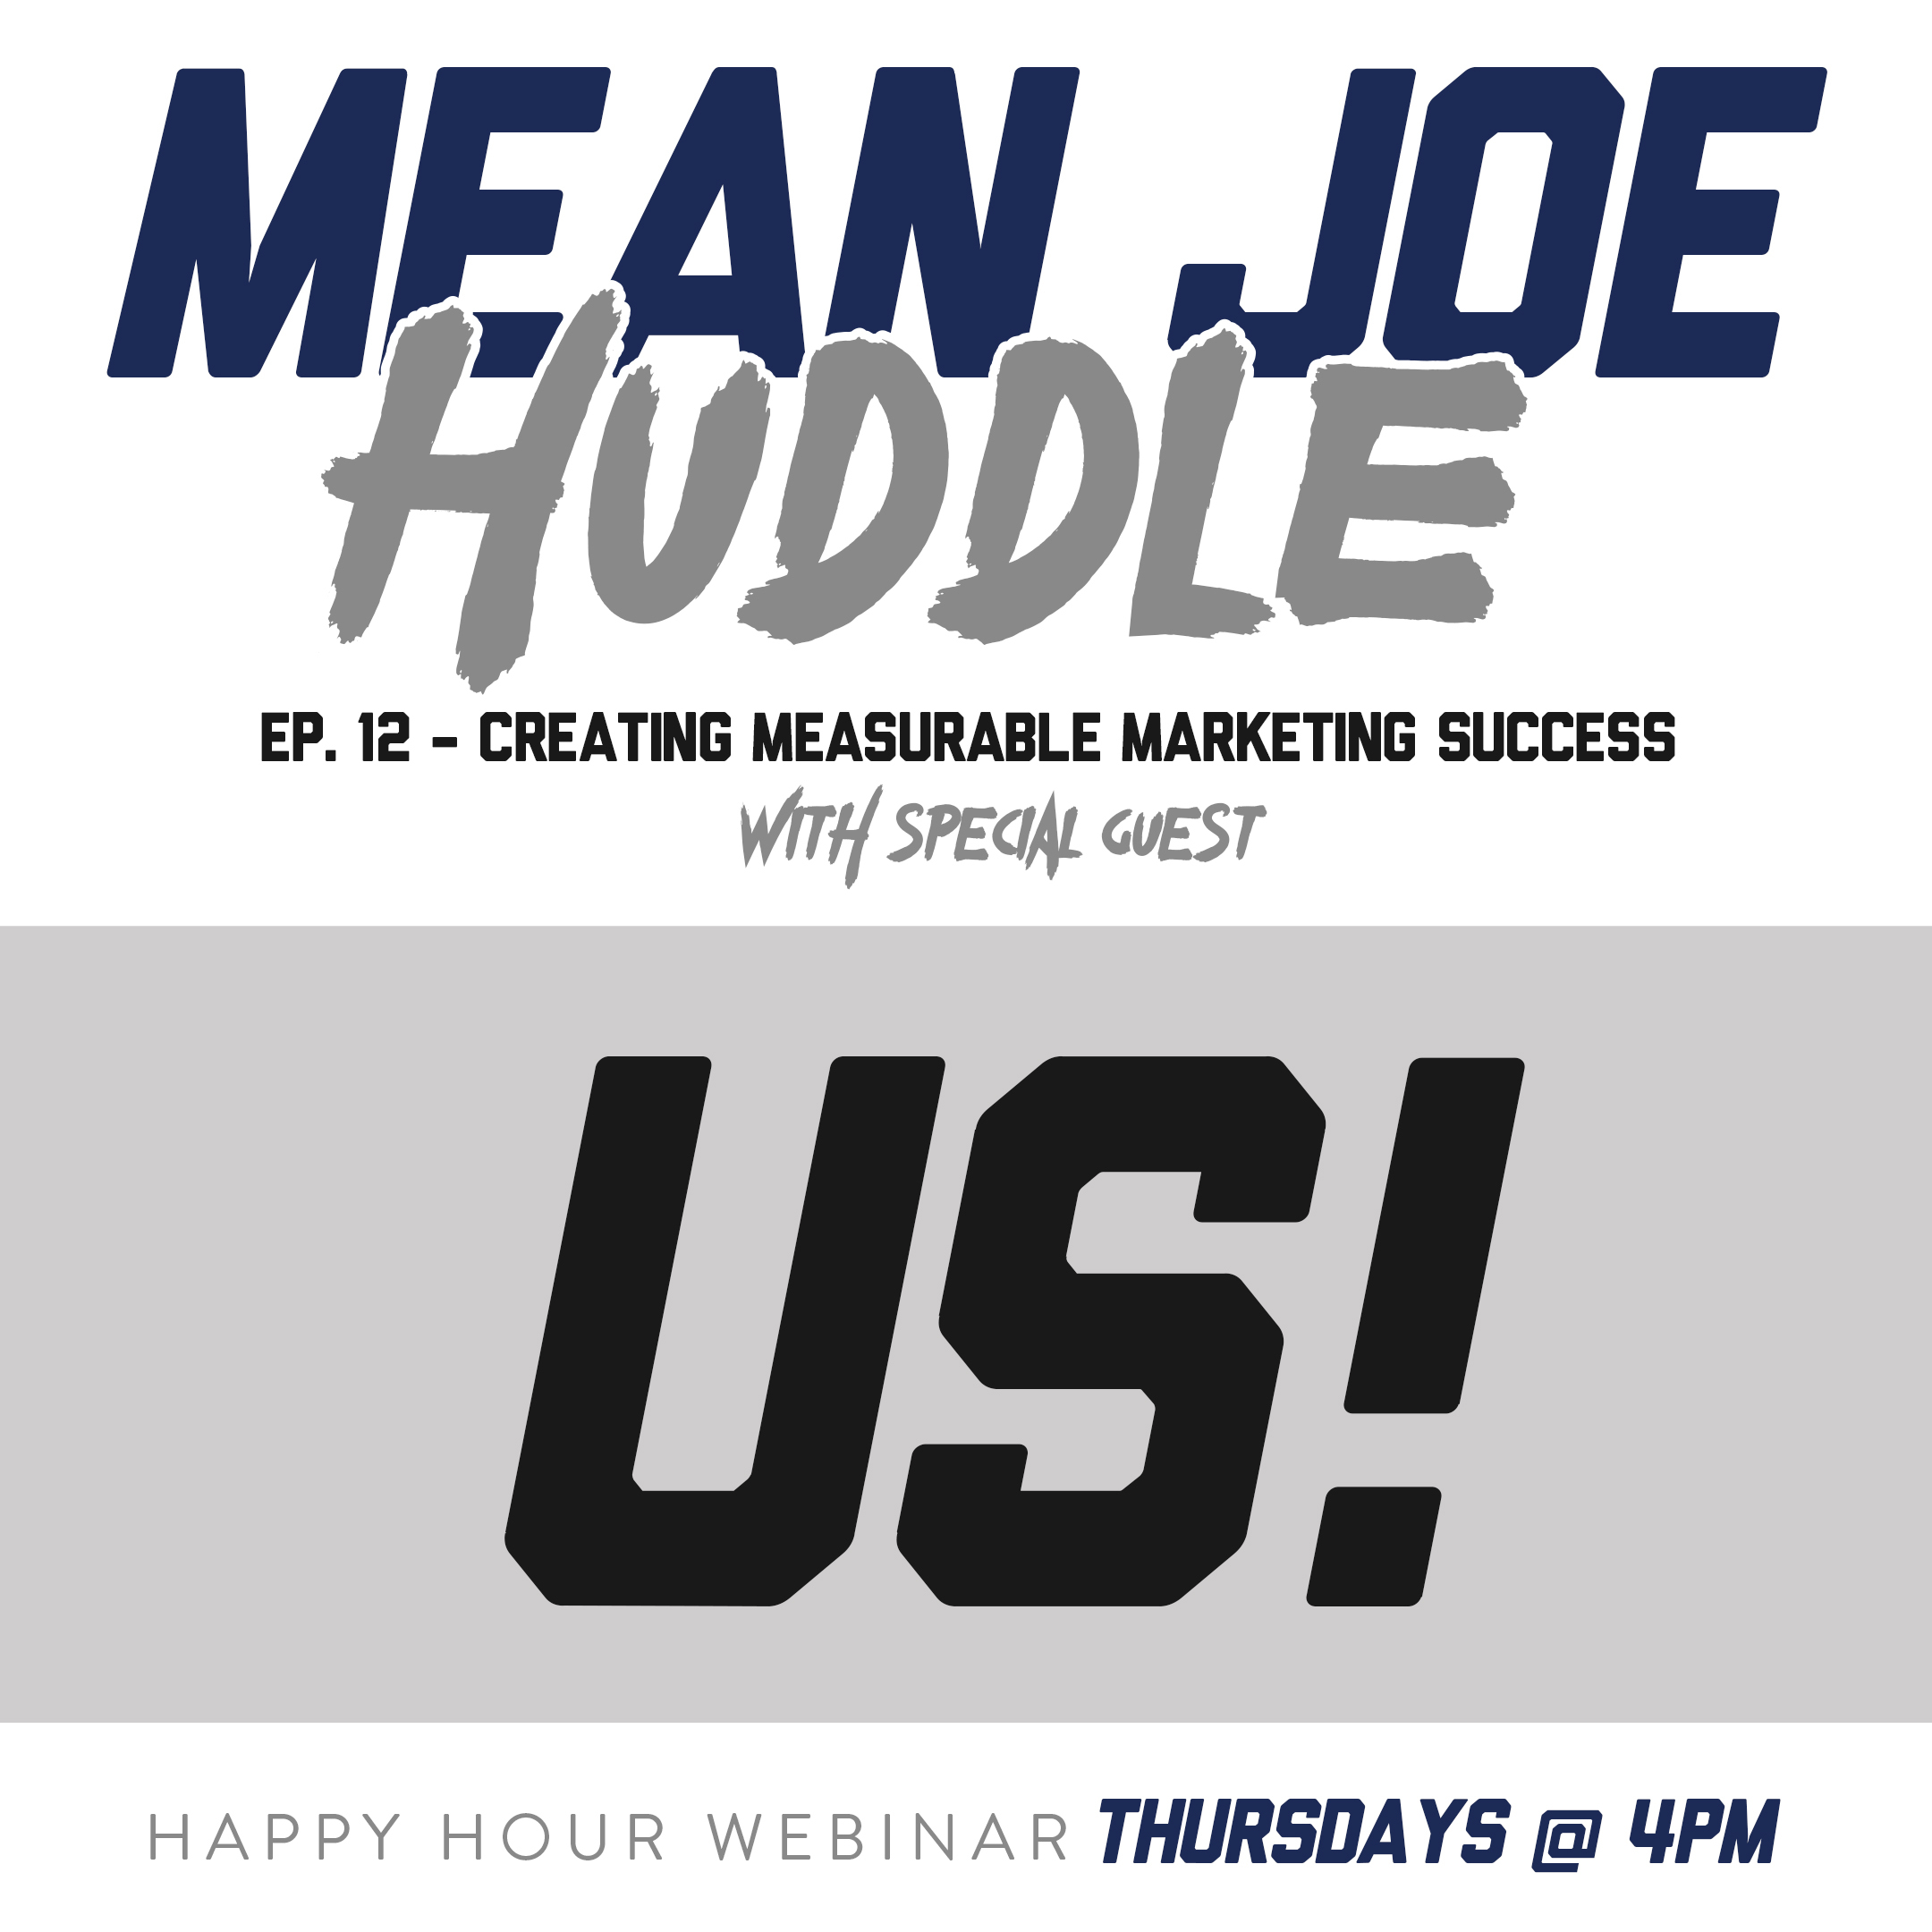 Mean Joe Huddle Happy Hour - Ep. 12 - Creating Measurable Marketing Success